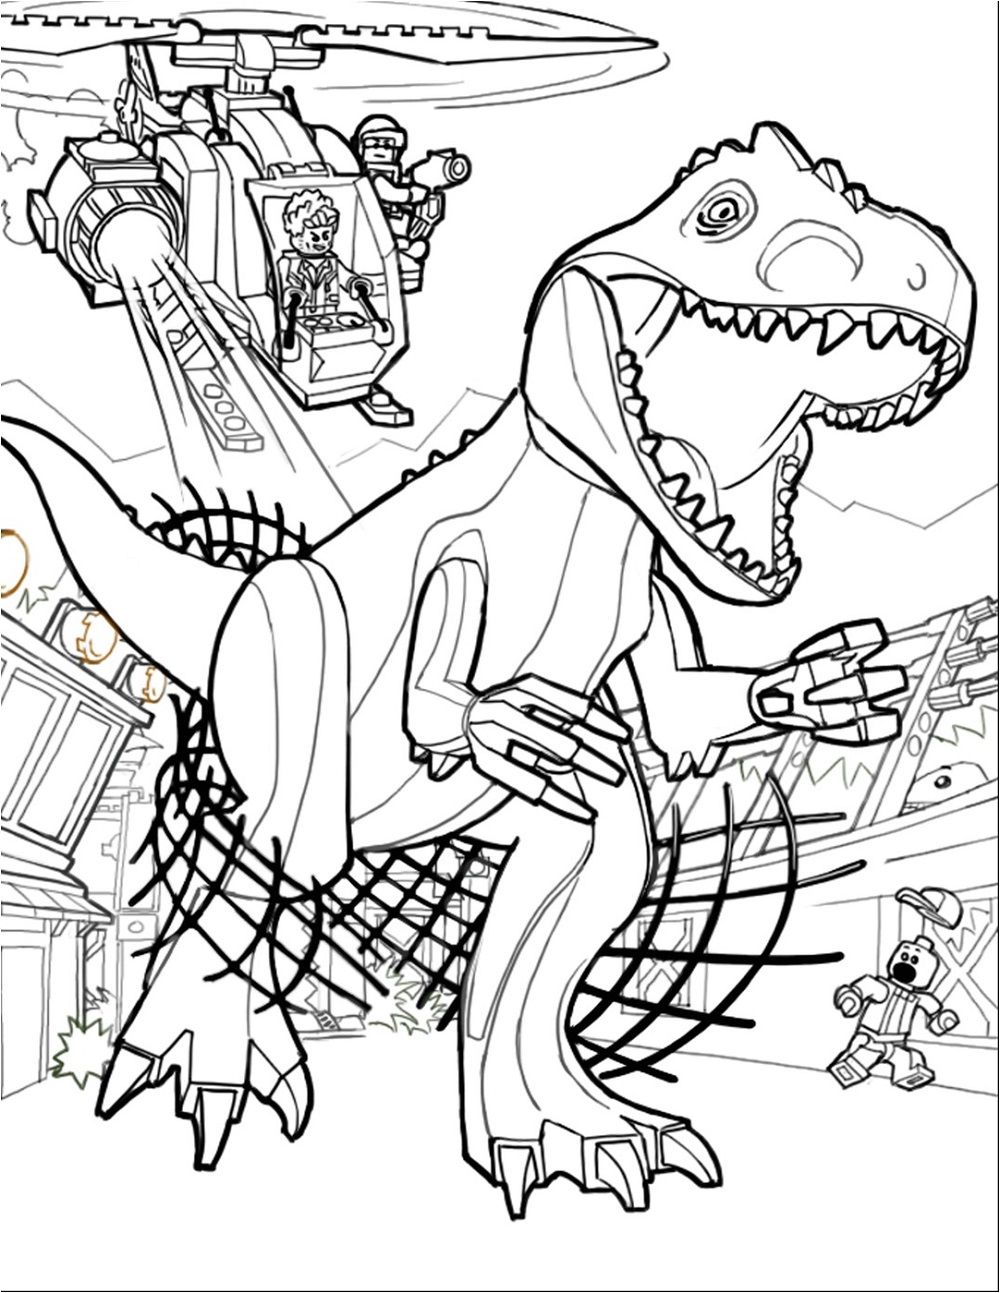 Lego Jurassic World Coloring Pages   Coloring Home